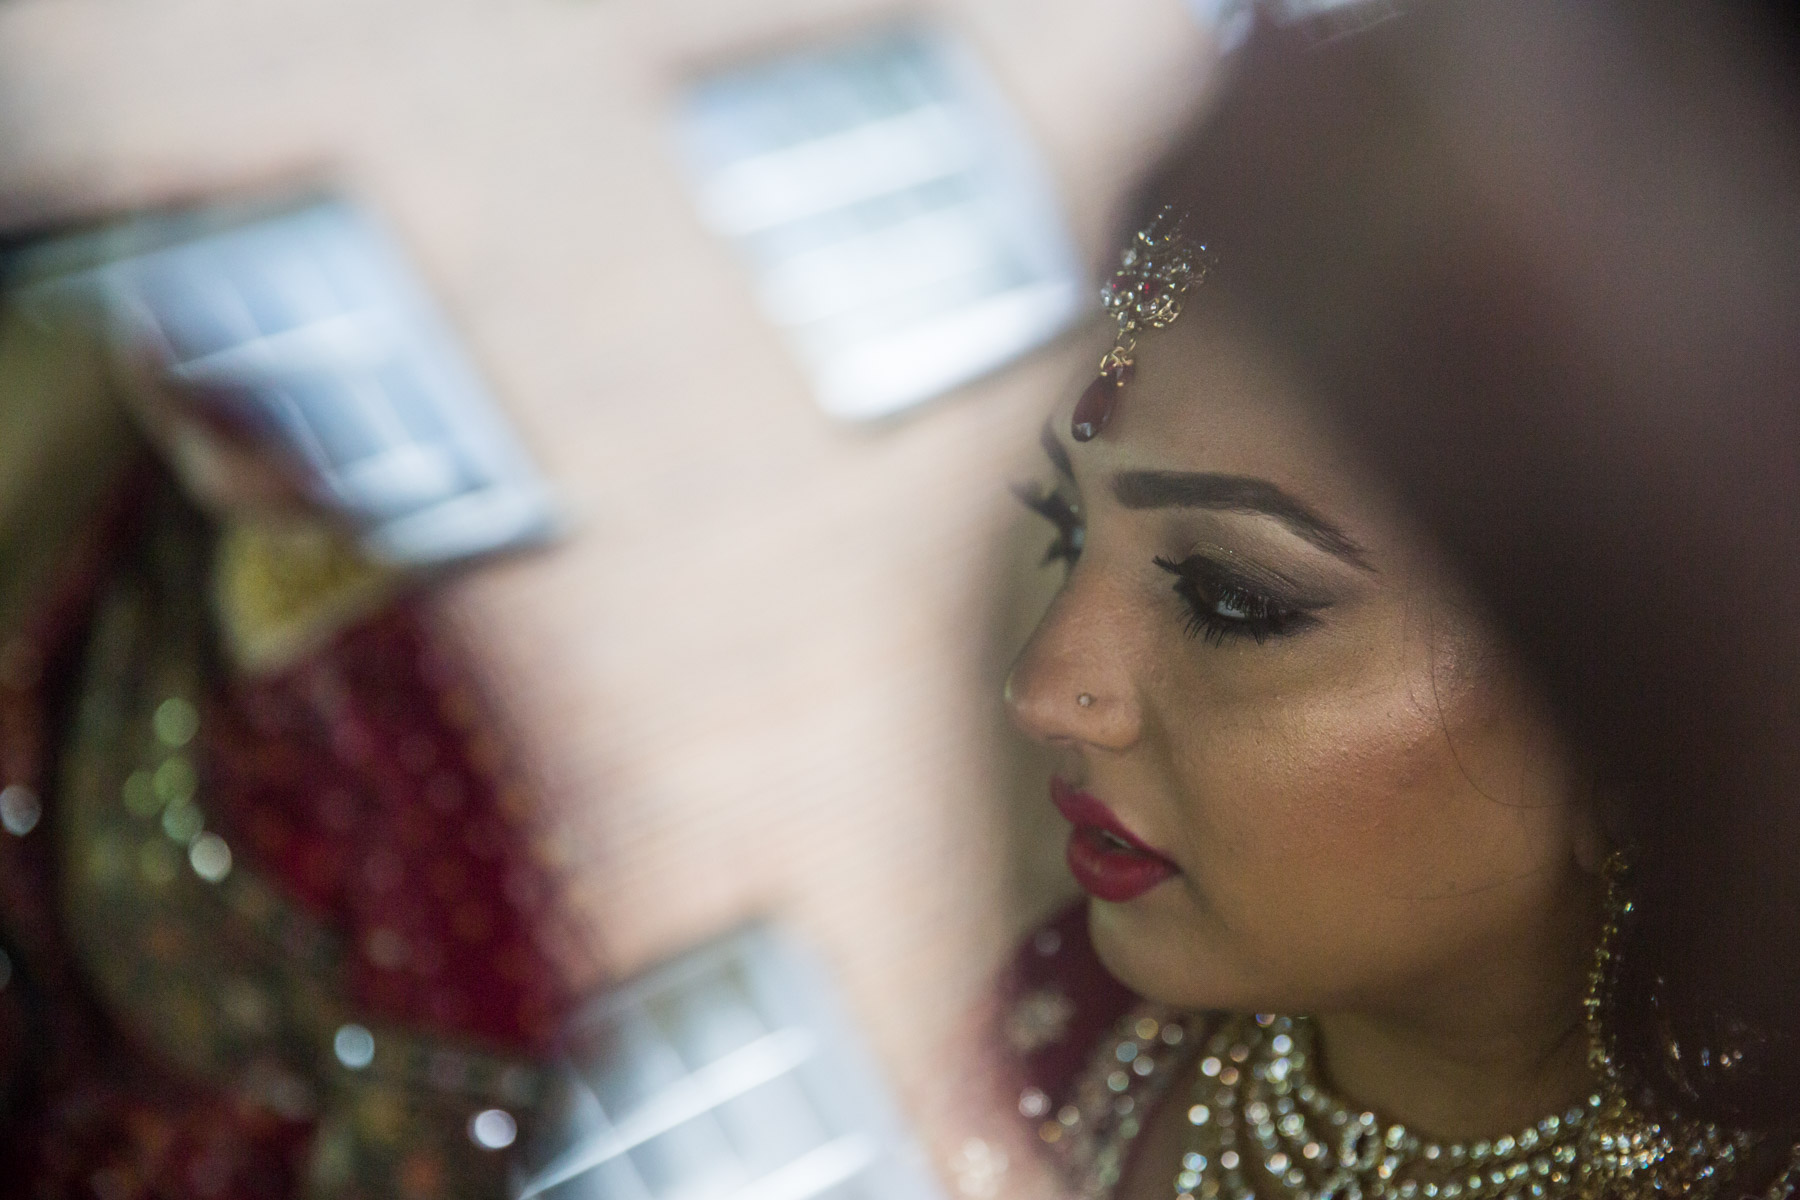 London Documentary Wedding Photographer by Richard Murgatroyd Ph